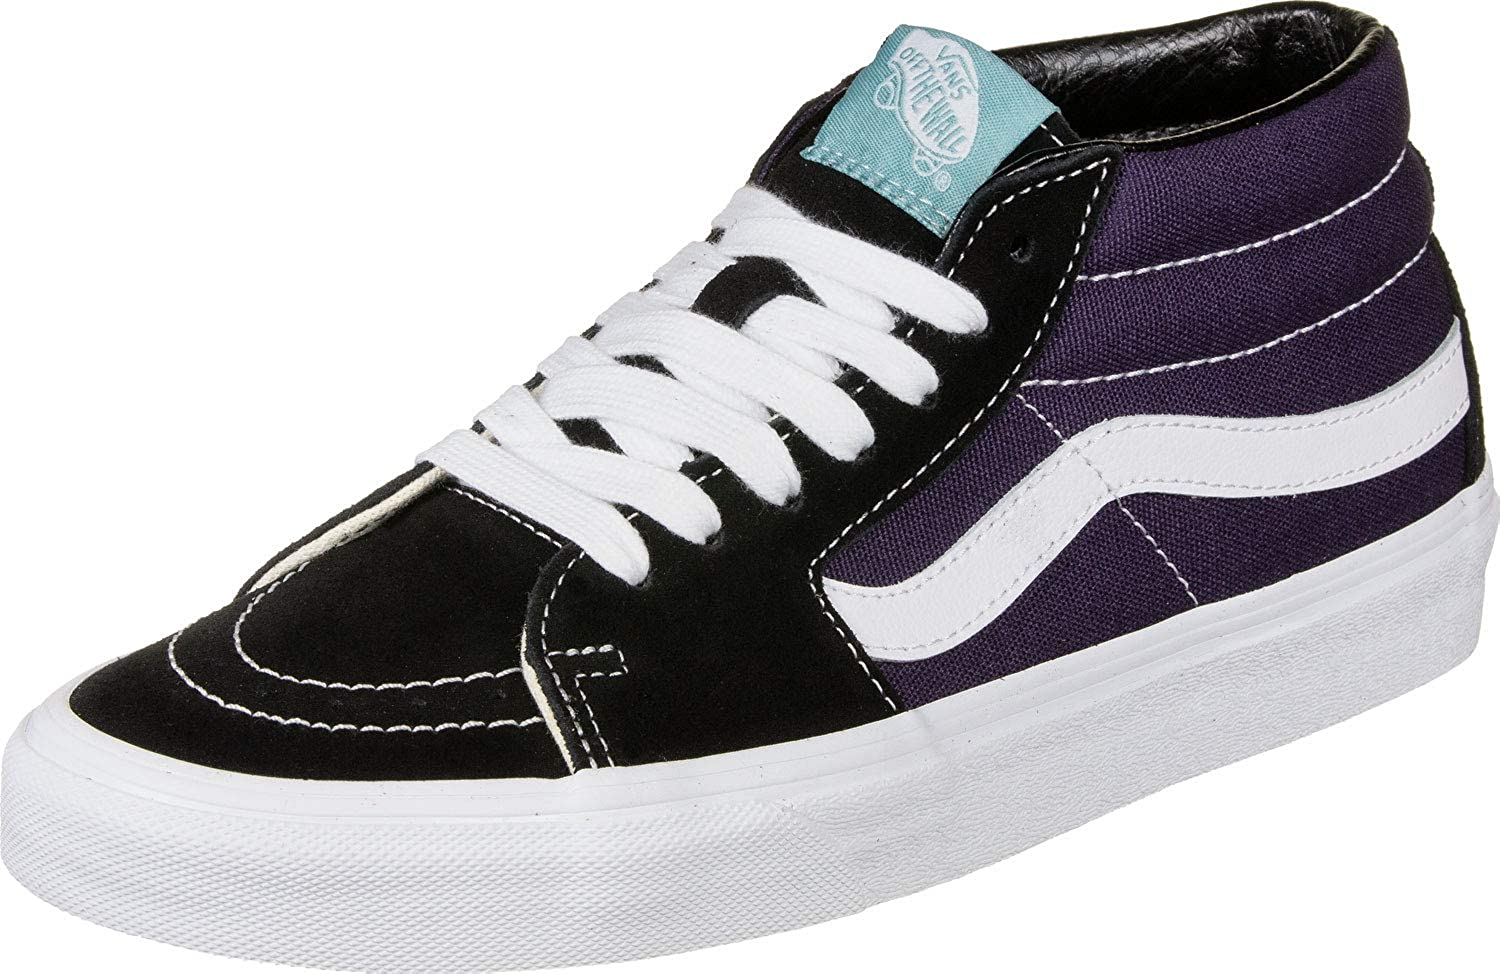 marque chaussures d'automne sk8 mid black mysterioso fcf91